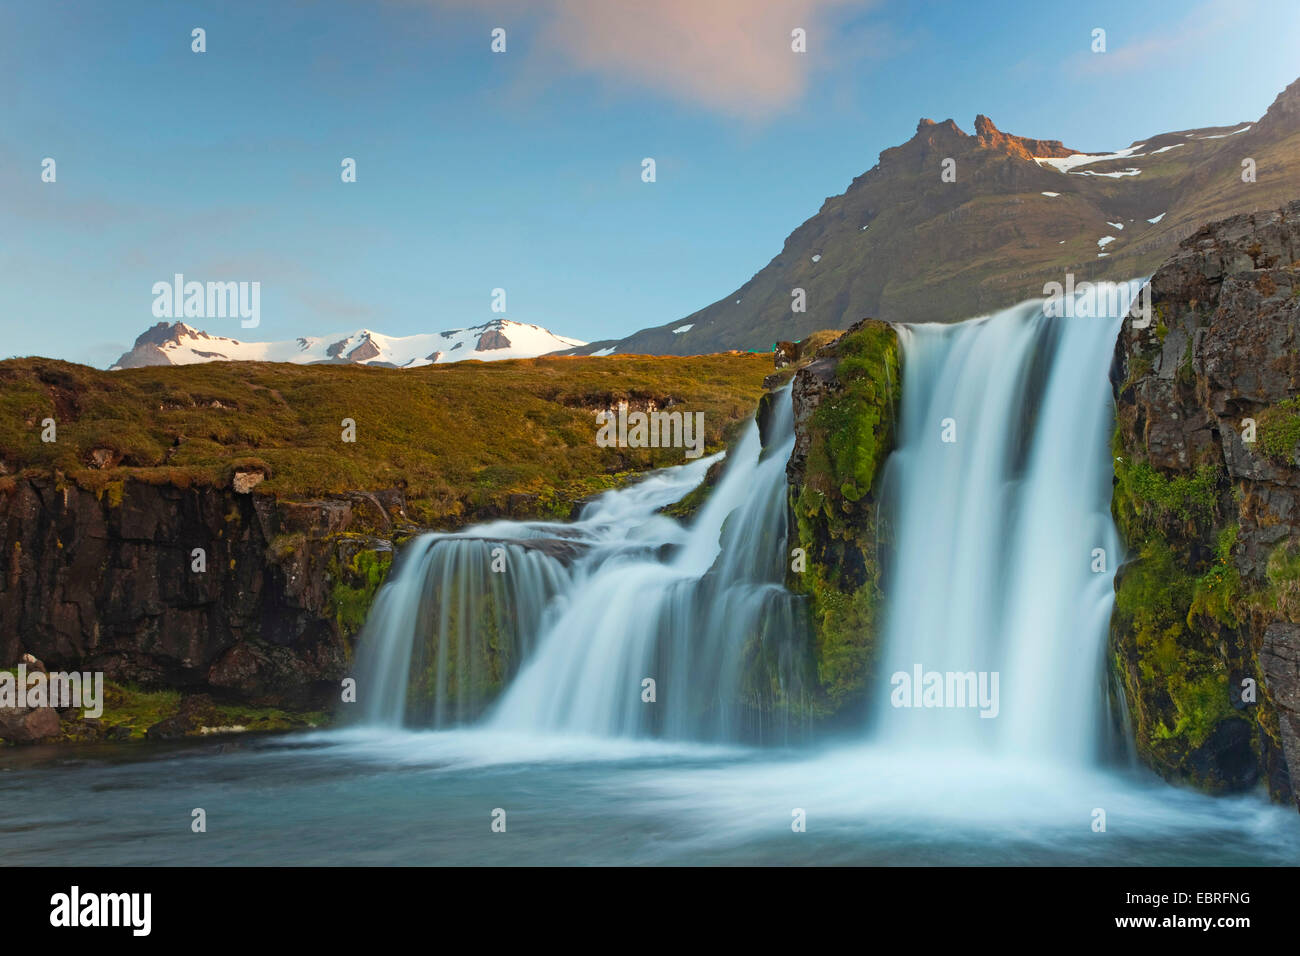 idyllic waterfall flowing from glacier, Iceland, Snaefellsnes - Stock Image